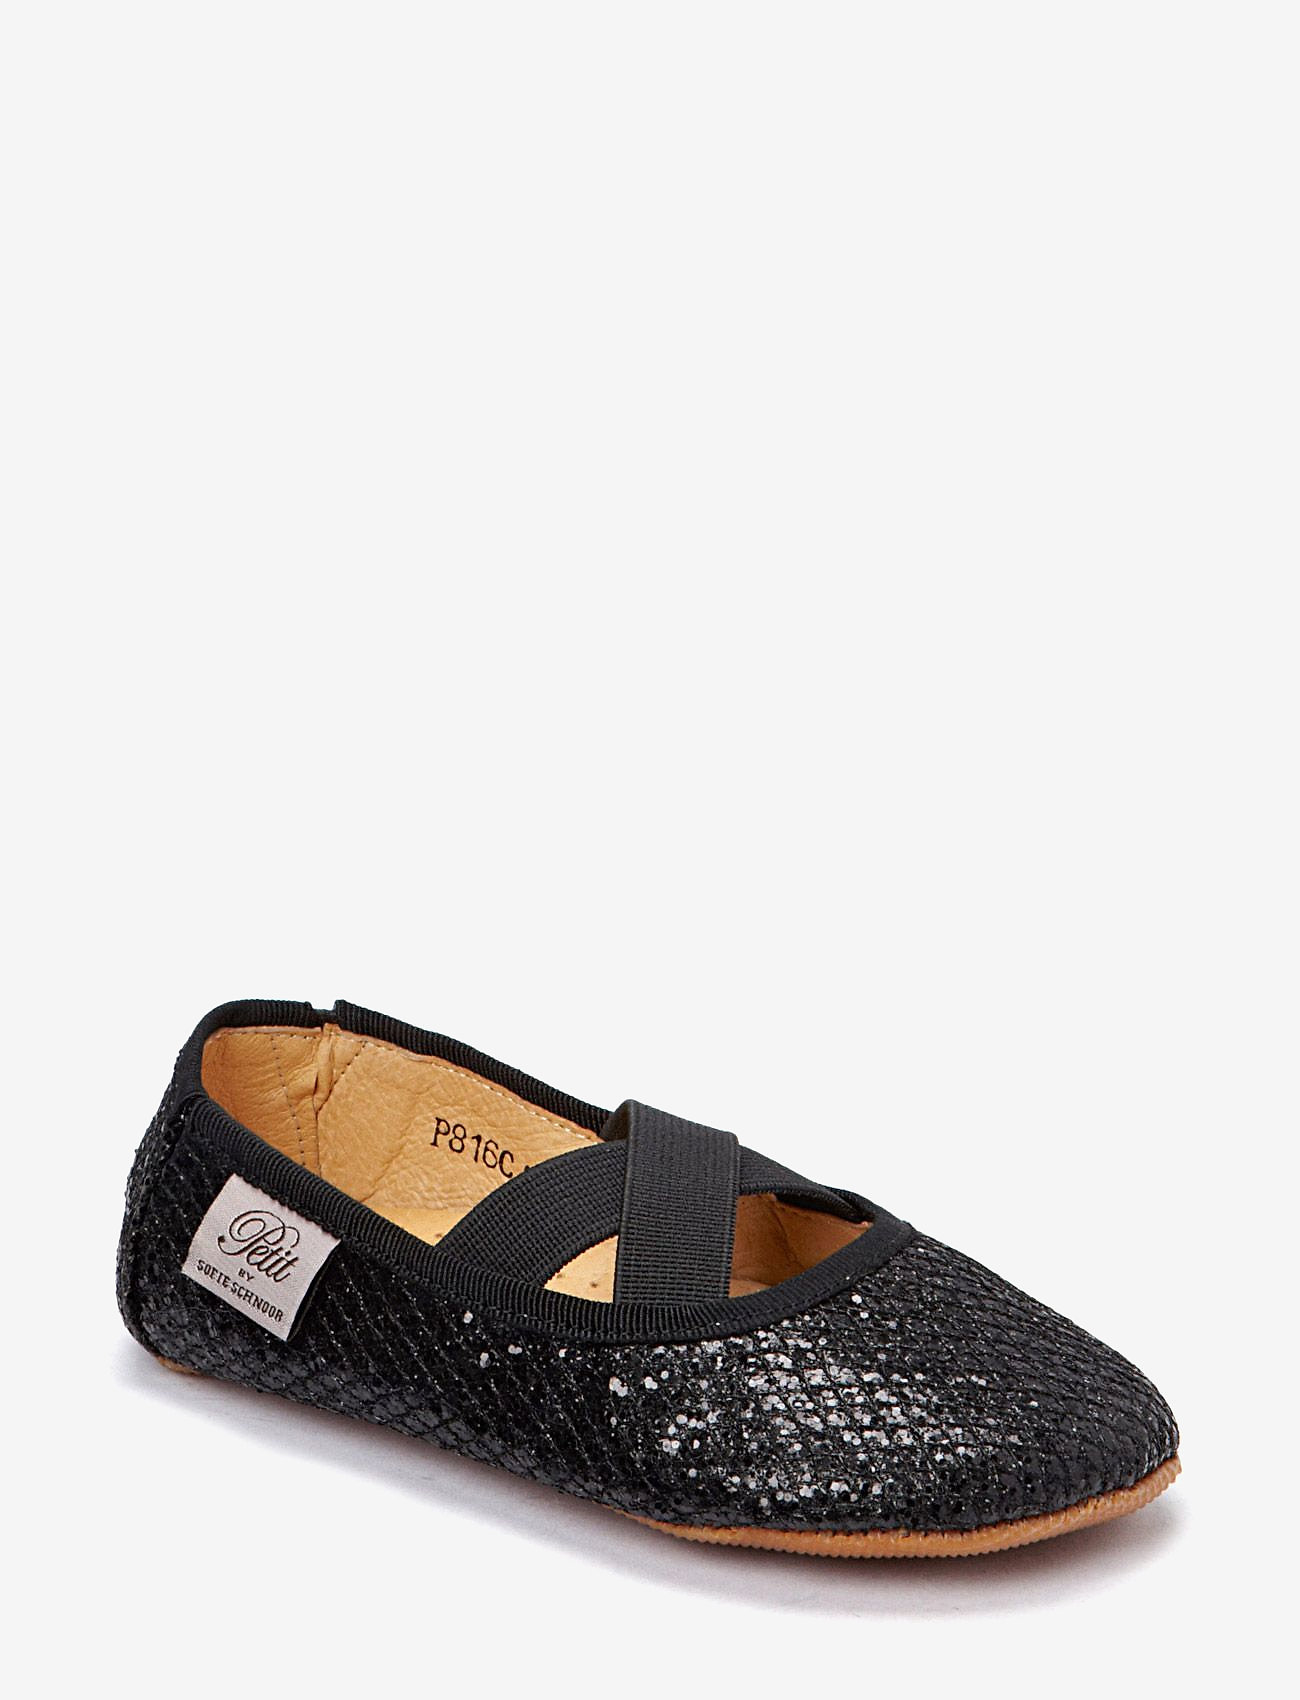 Petit by Sofie Schnoor - Indoors shoe - glitter - slippers - black - 0